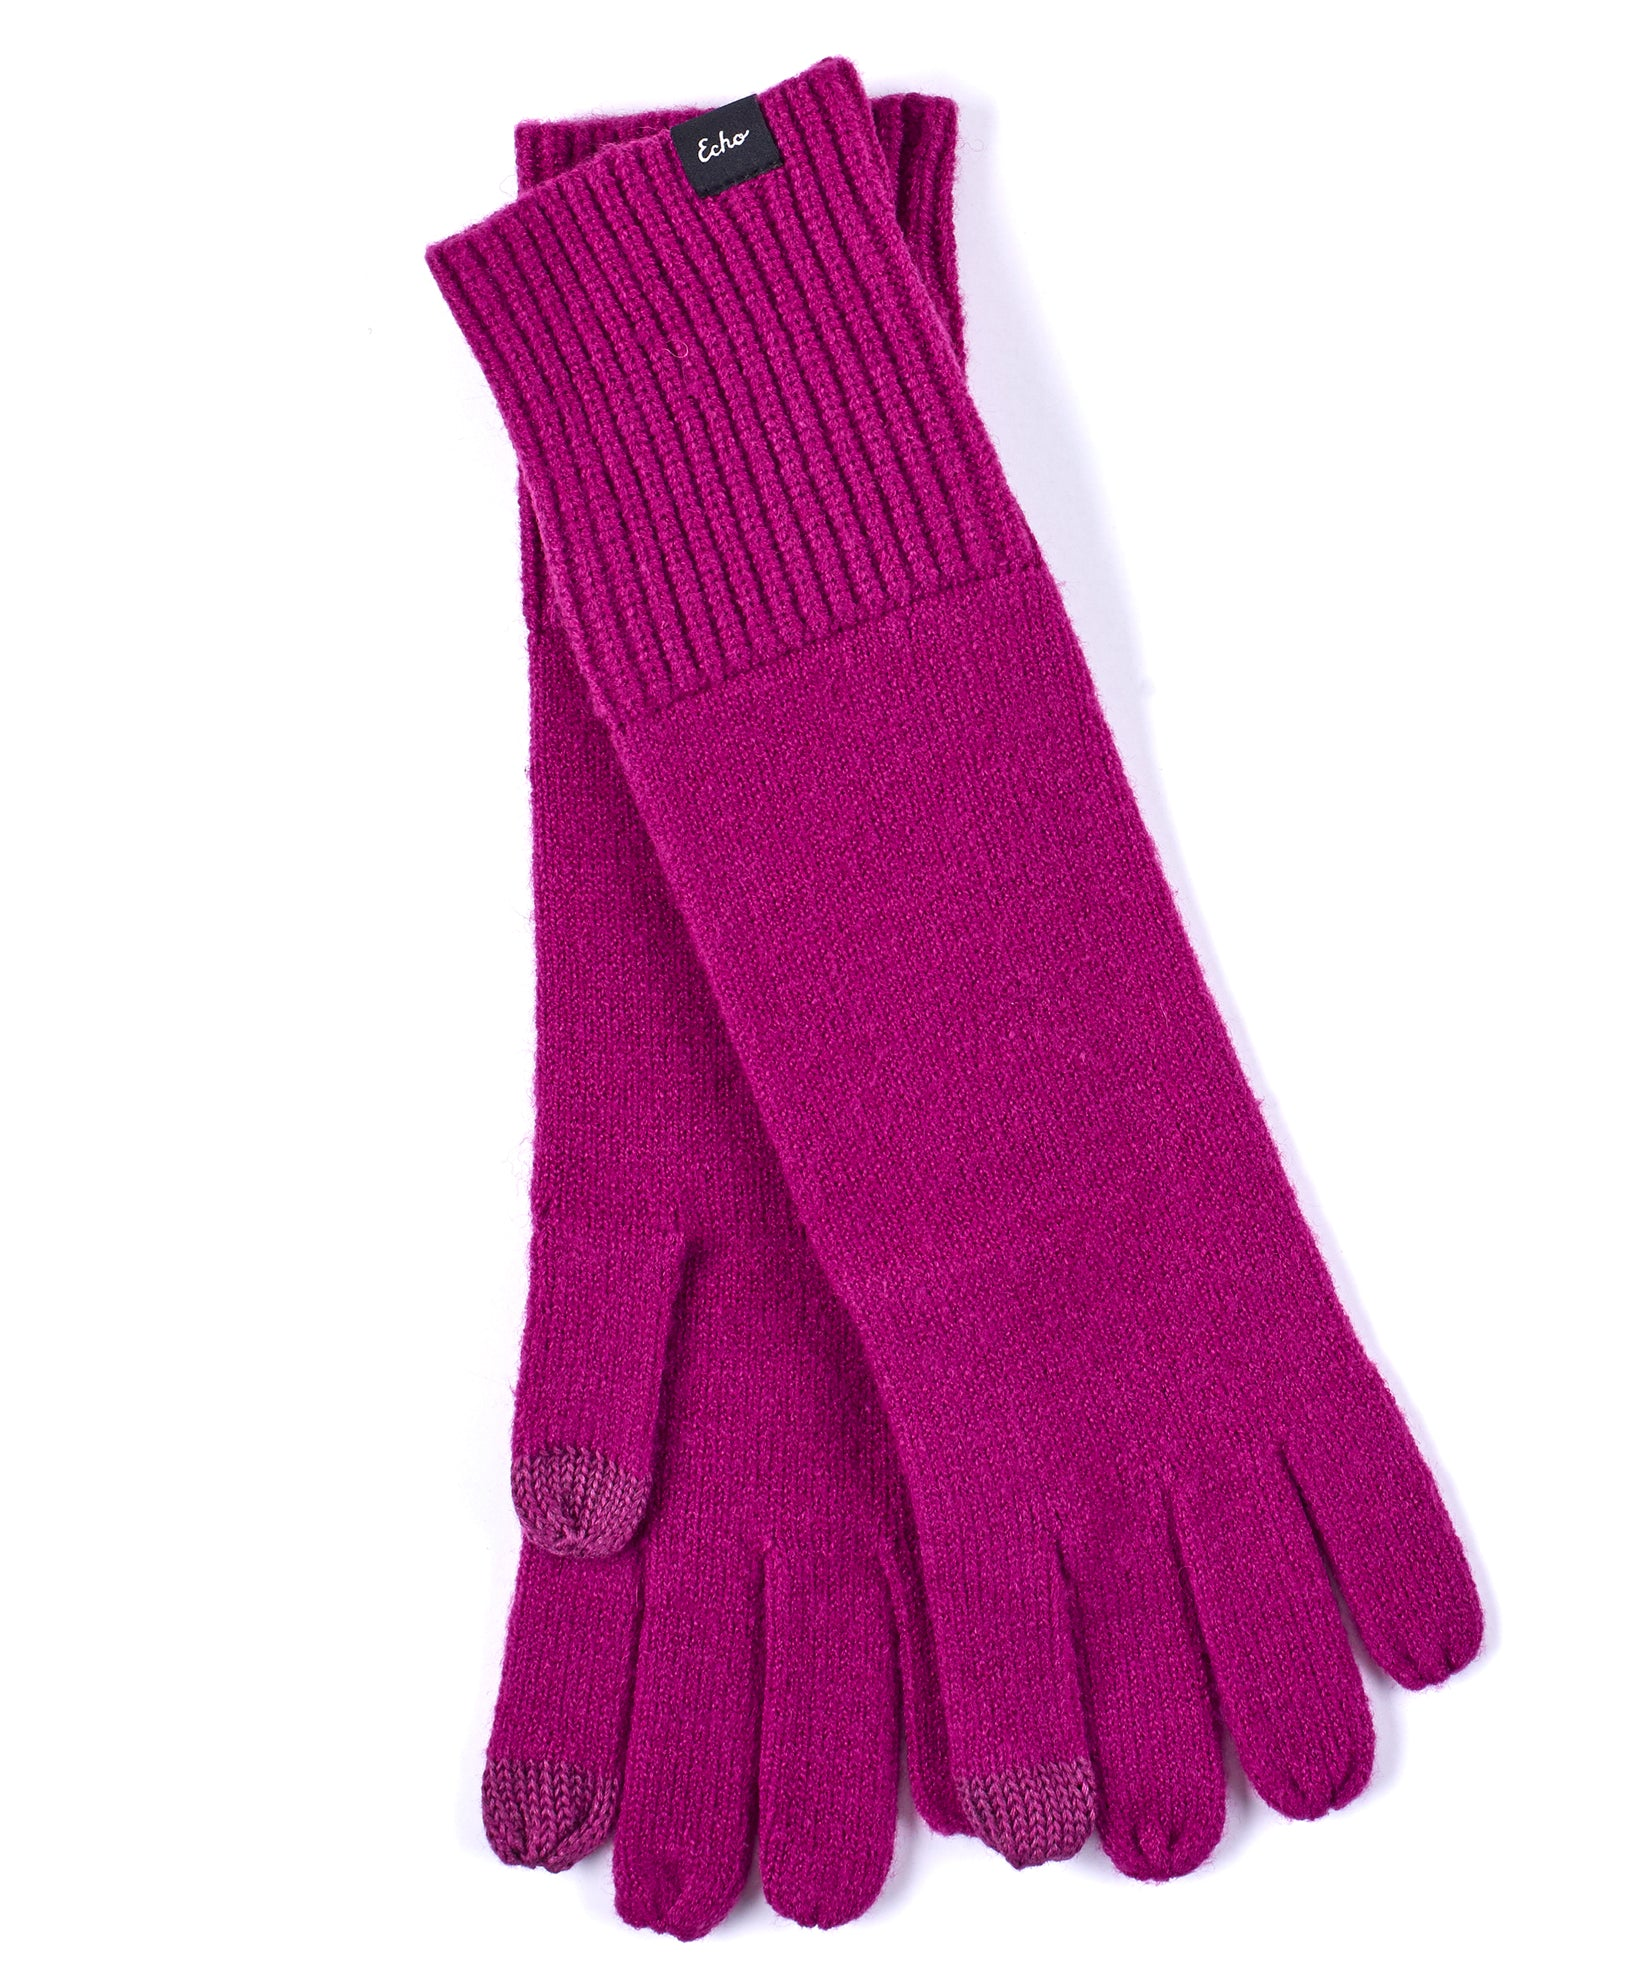 Indian Rose - Active Stretch Glove